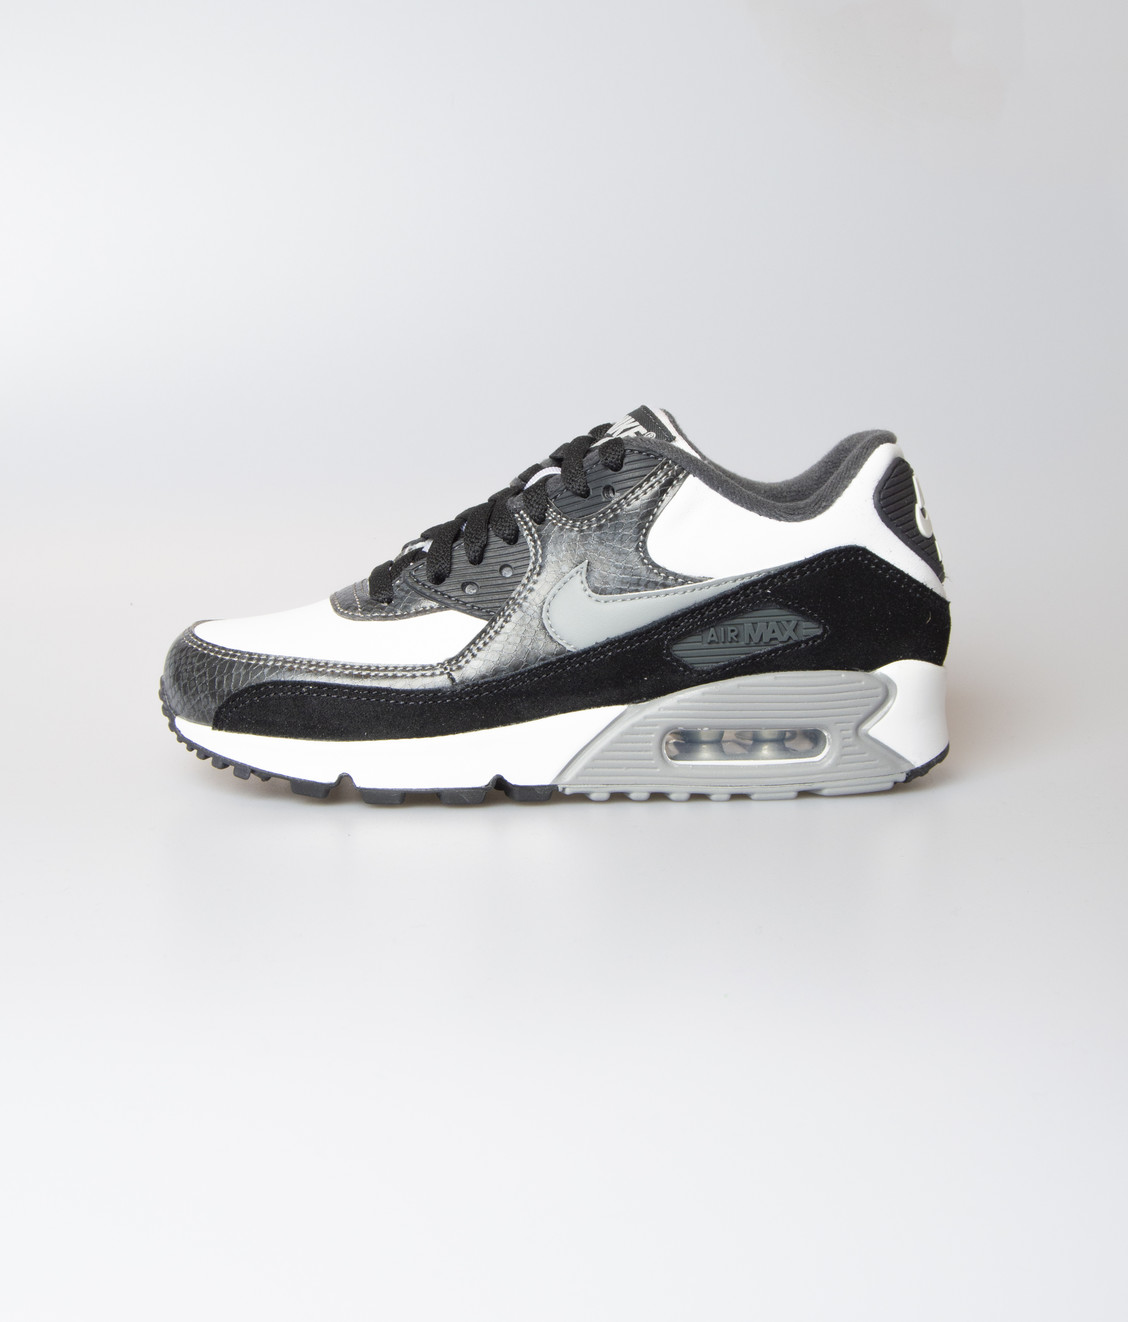 Nike Nike Air Max 90 QS White Particle Grey Python